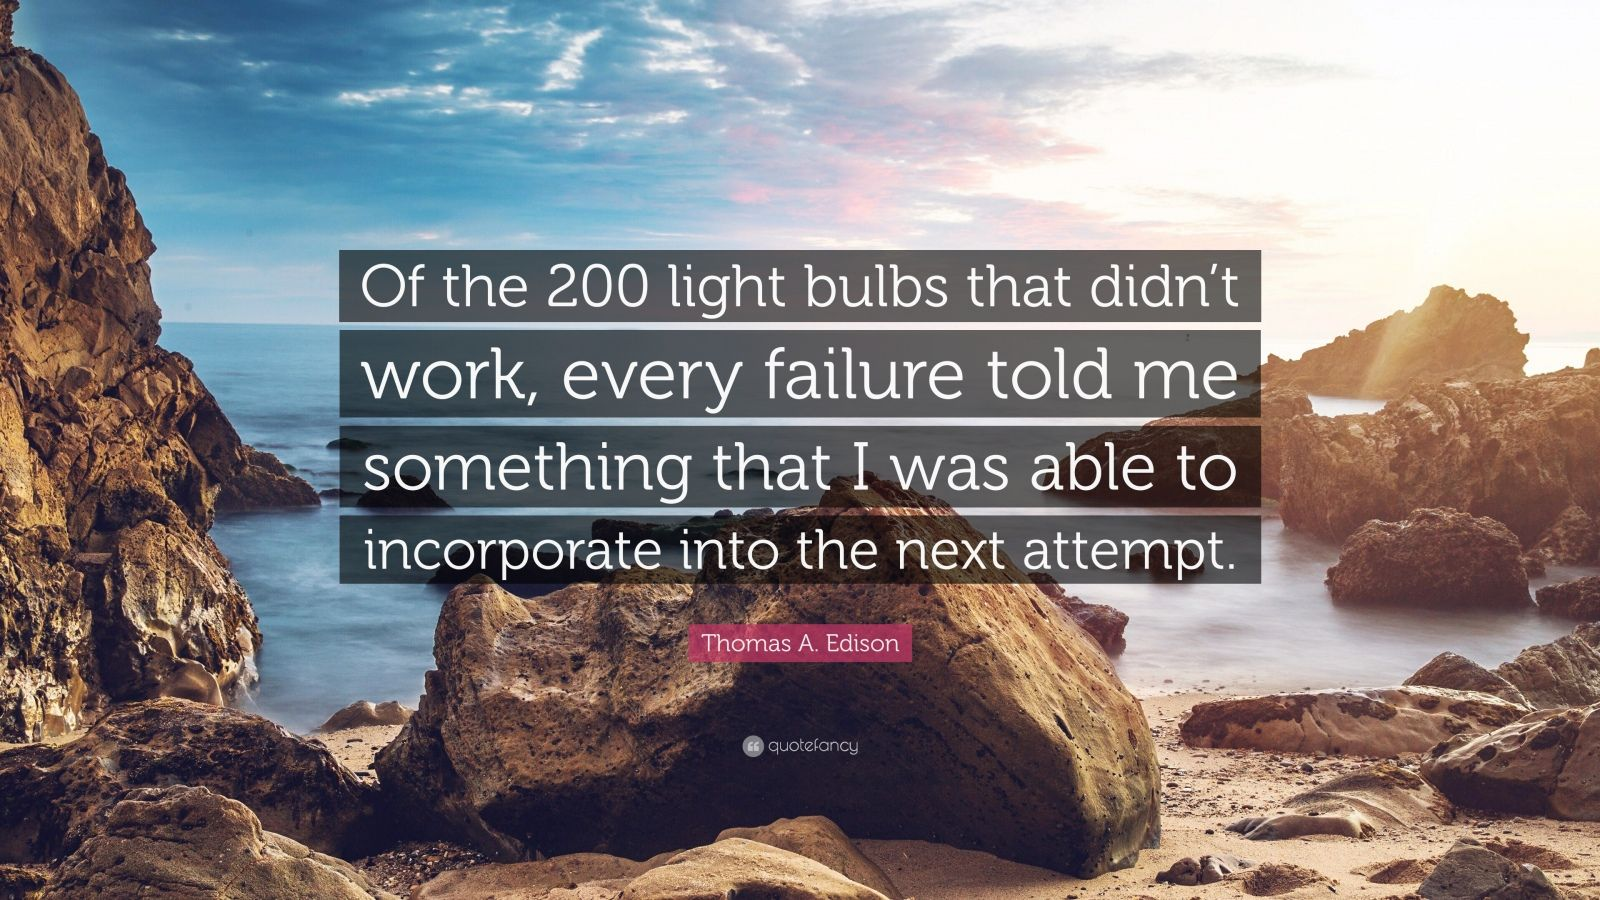 """Thomas A. Edison Quote: """"Of the 200 light bulbs that didn't work, every failure told me something that I was able to incorporate into the next attempt."""""""